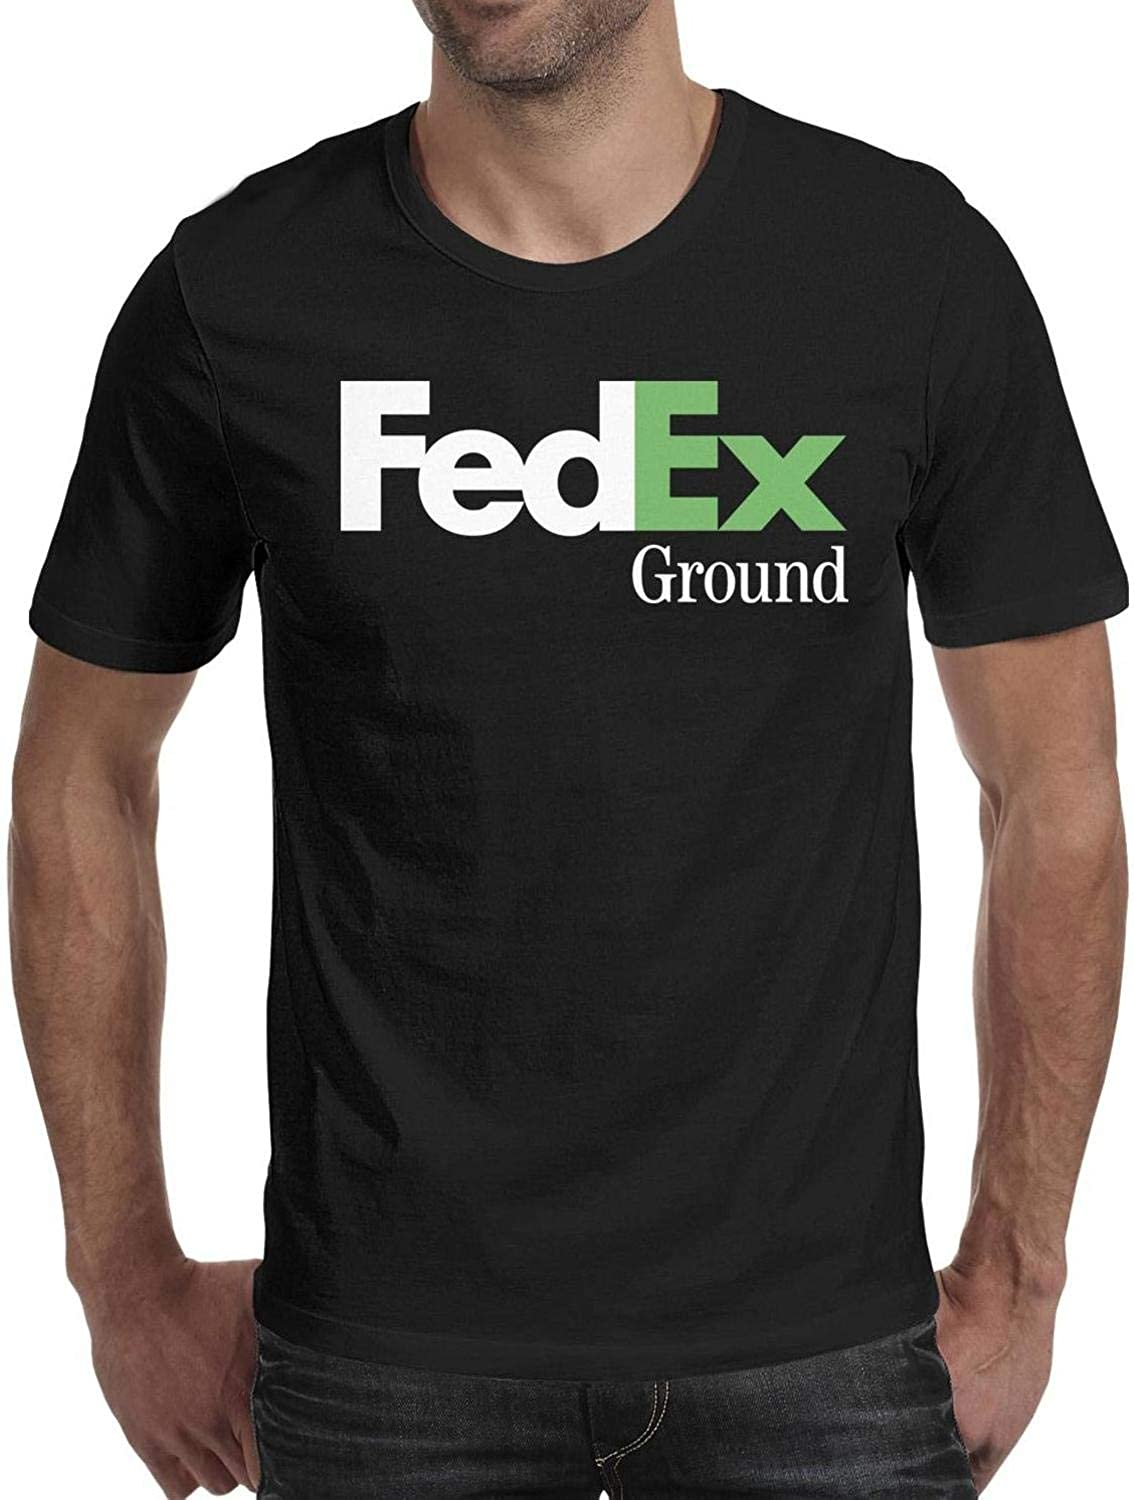 Mens -Ground-Violet-Green-Logo-Symbol-Black O-Neck Tee T Shirts Cotton Jersey